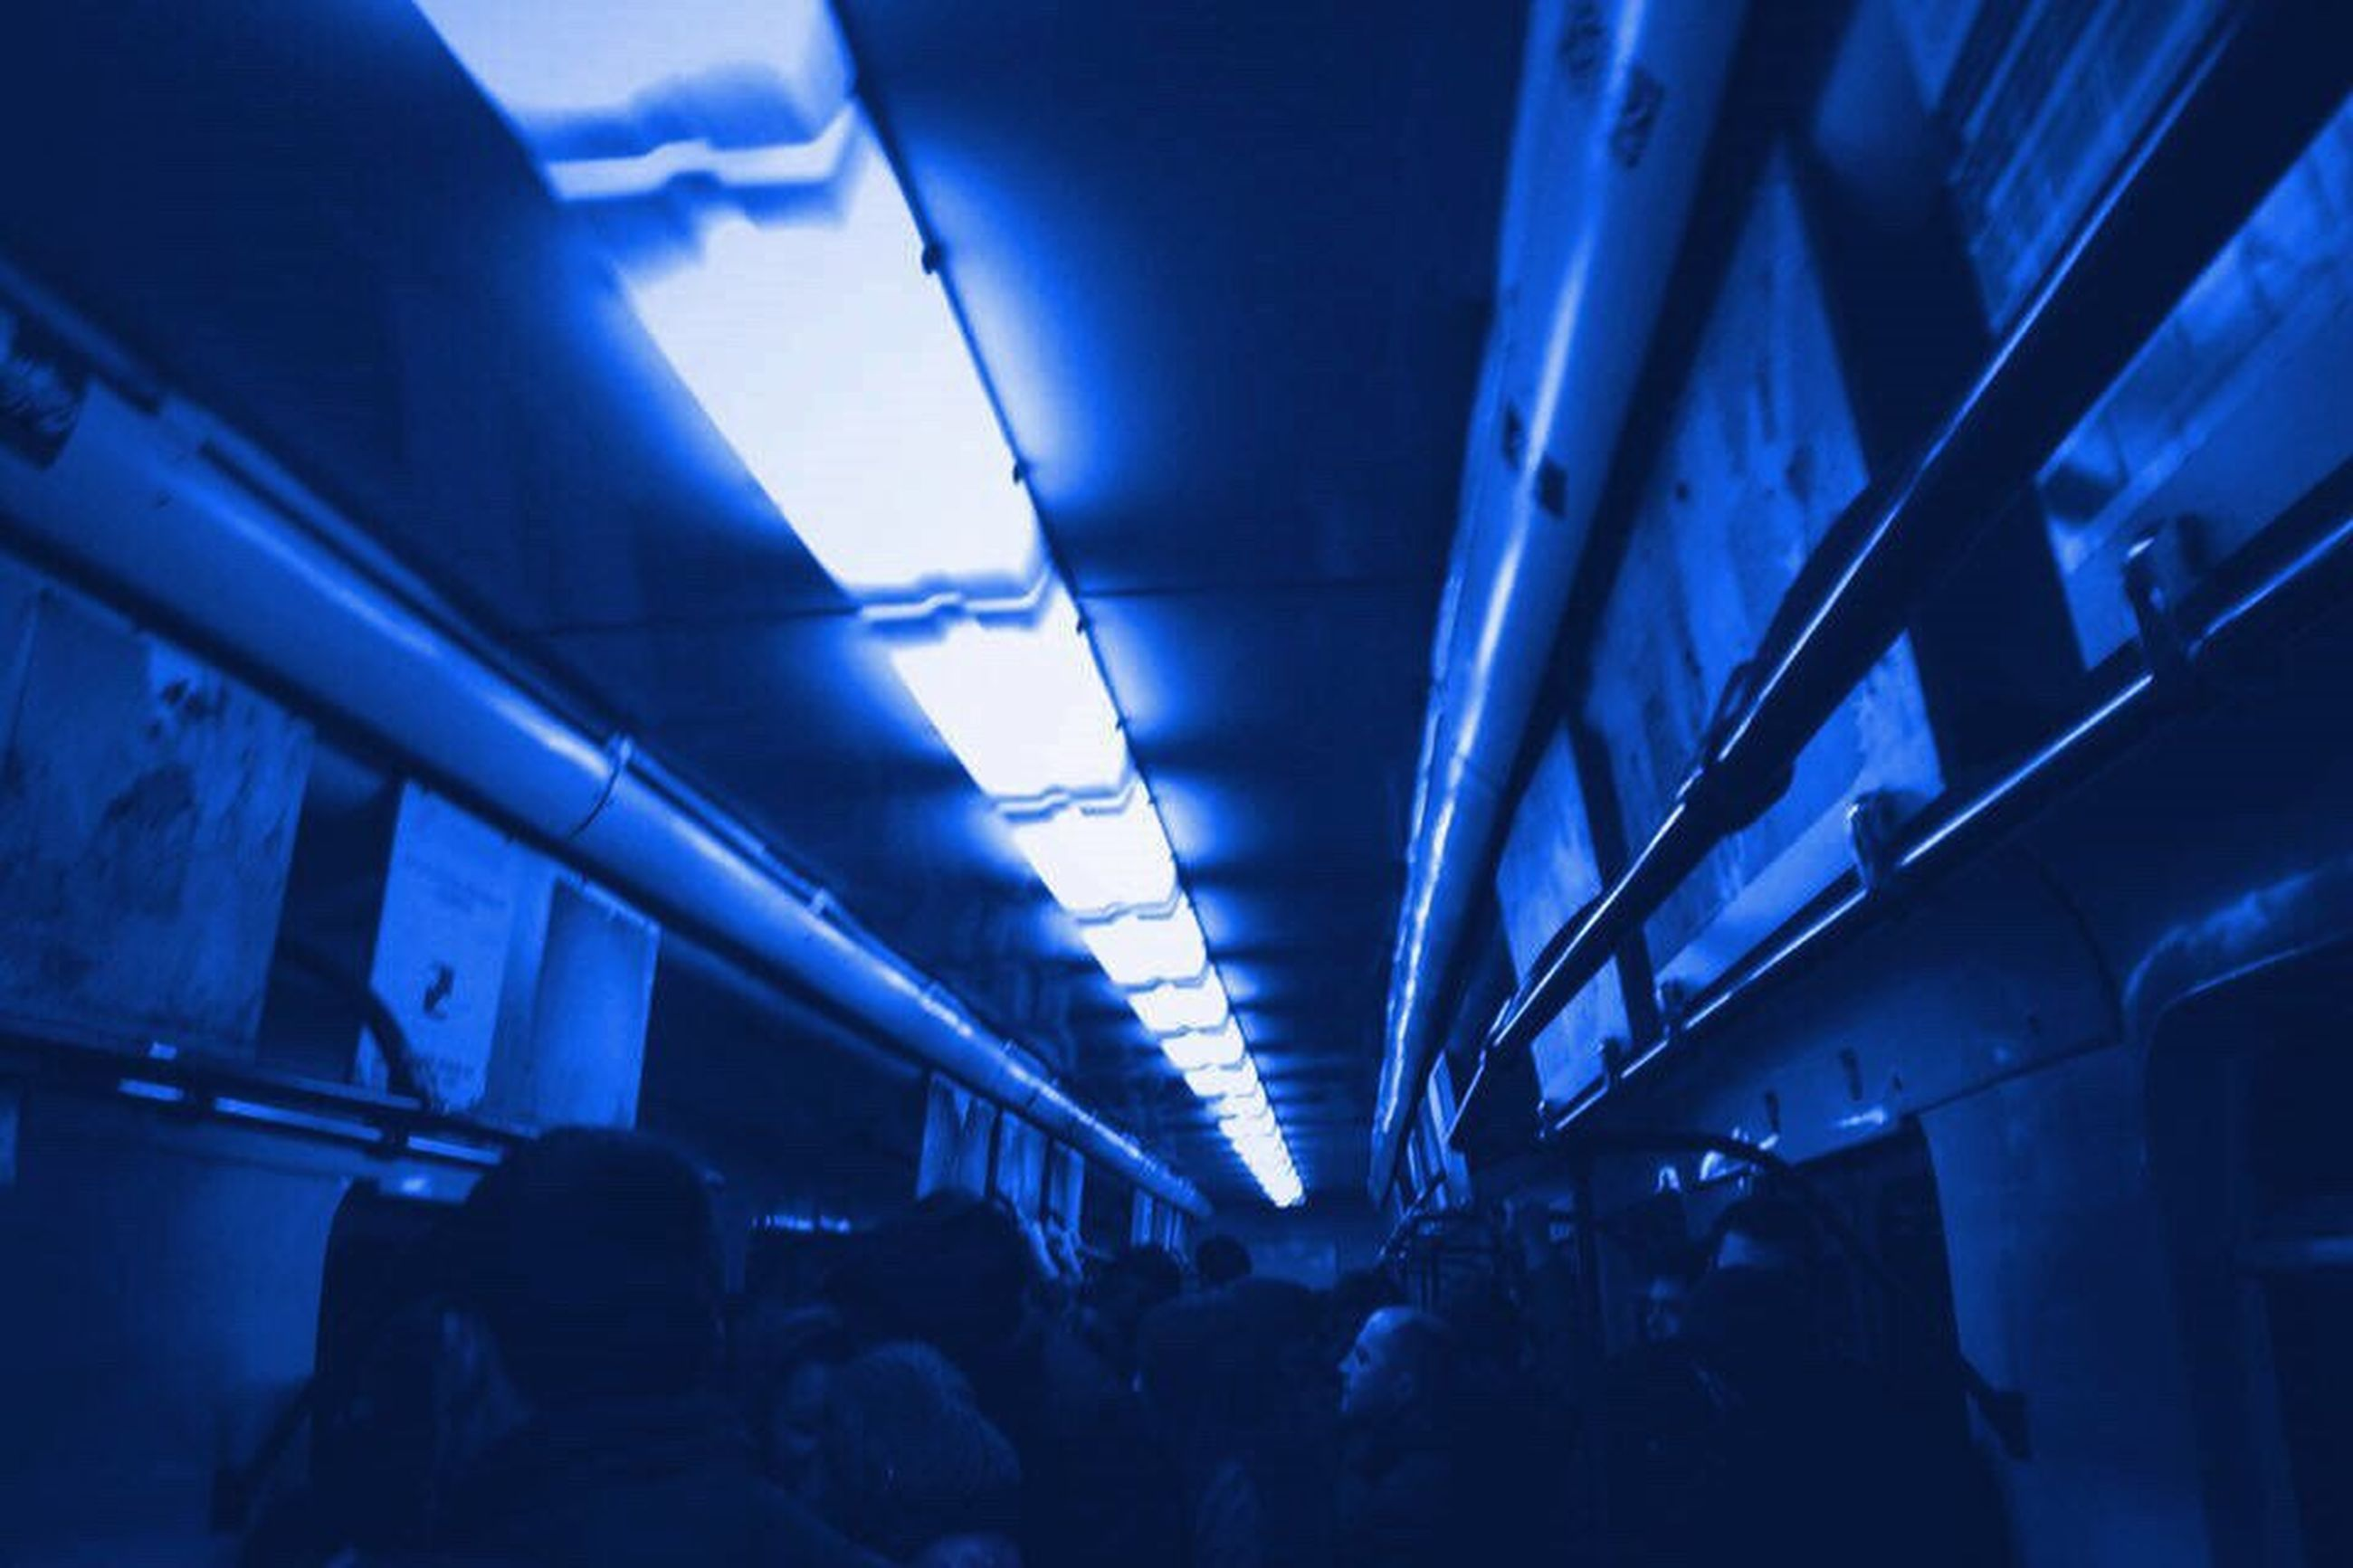 illuminated, indoors, lighting equipment, blue, transportation, travel, lifestyles, subway station, large group of people, mode of transport, real people, men, people, neon, public transportation, subway train, night, commuter, rush hour, crowd, adults only, adult